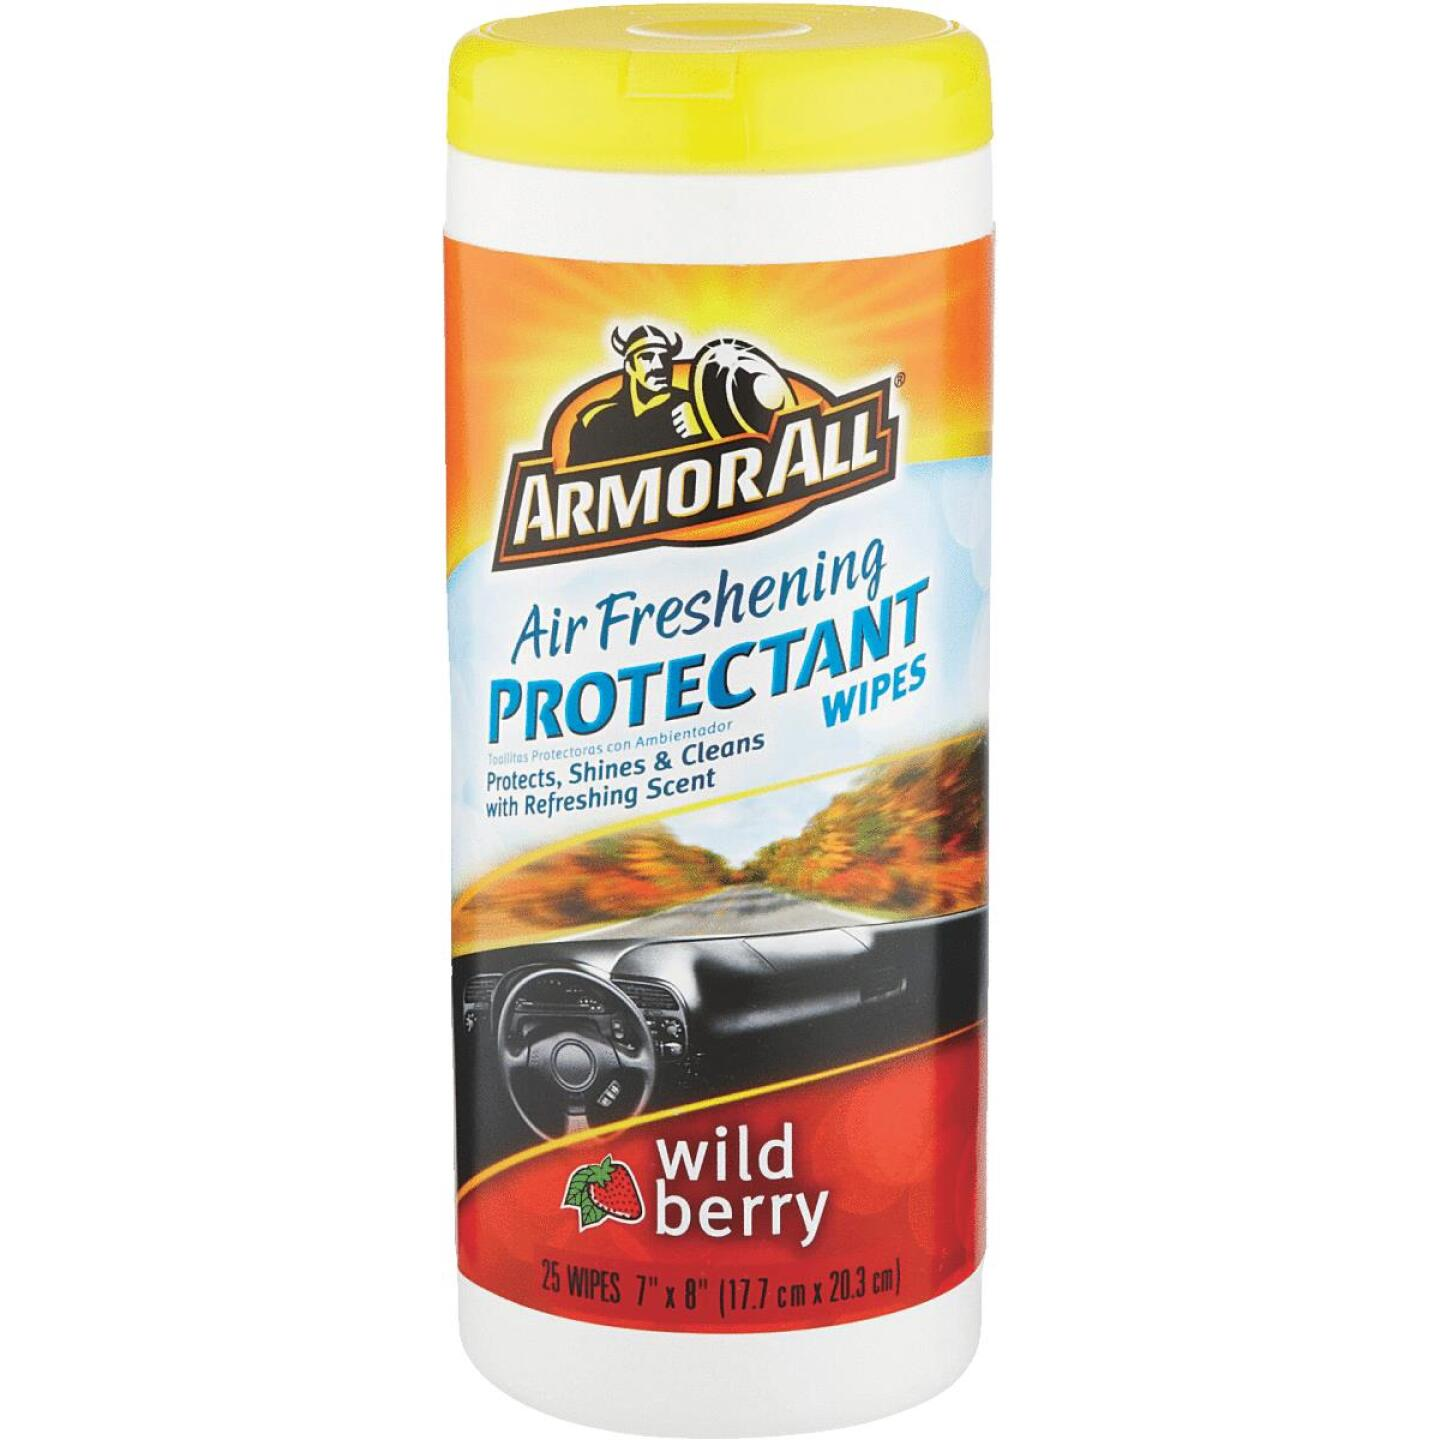 Armor All Wild Berry Scent Wipe Protectant Wipe Image 1